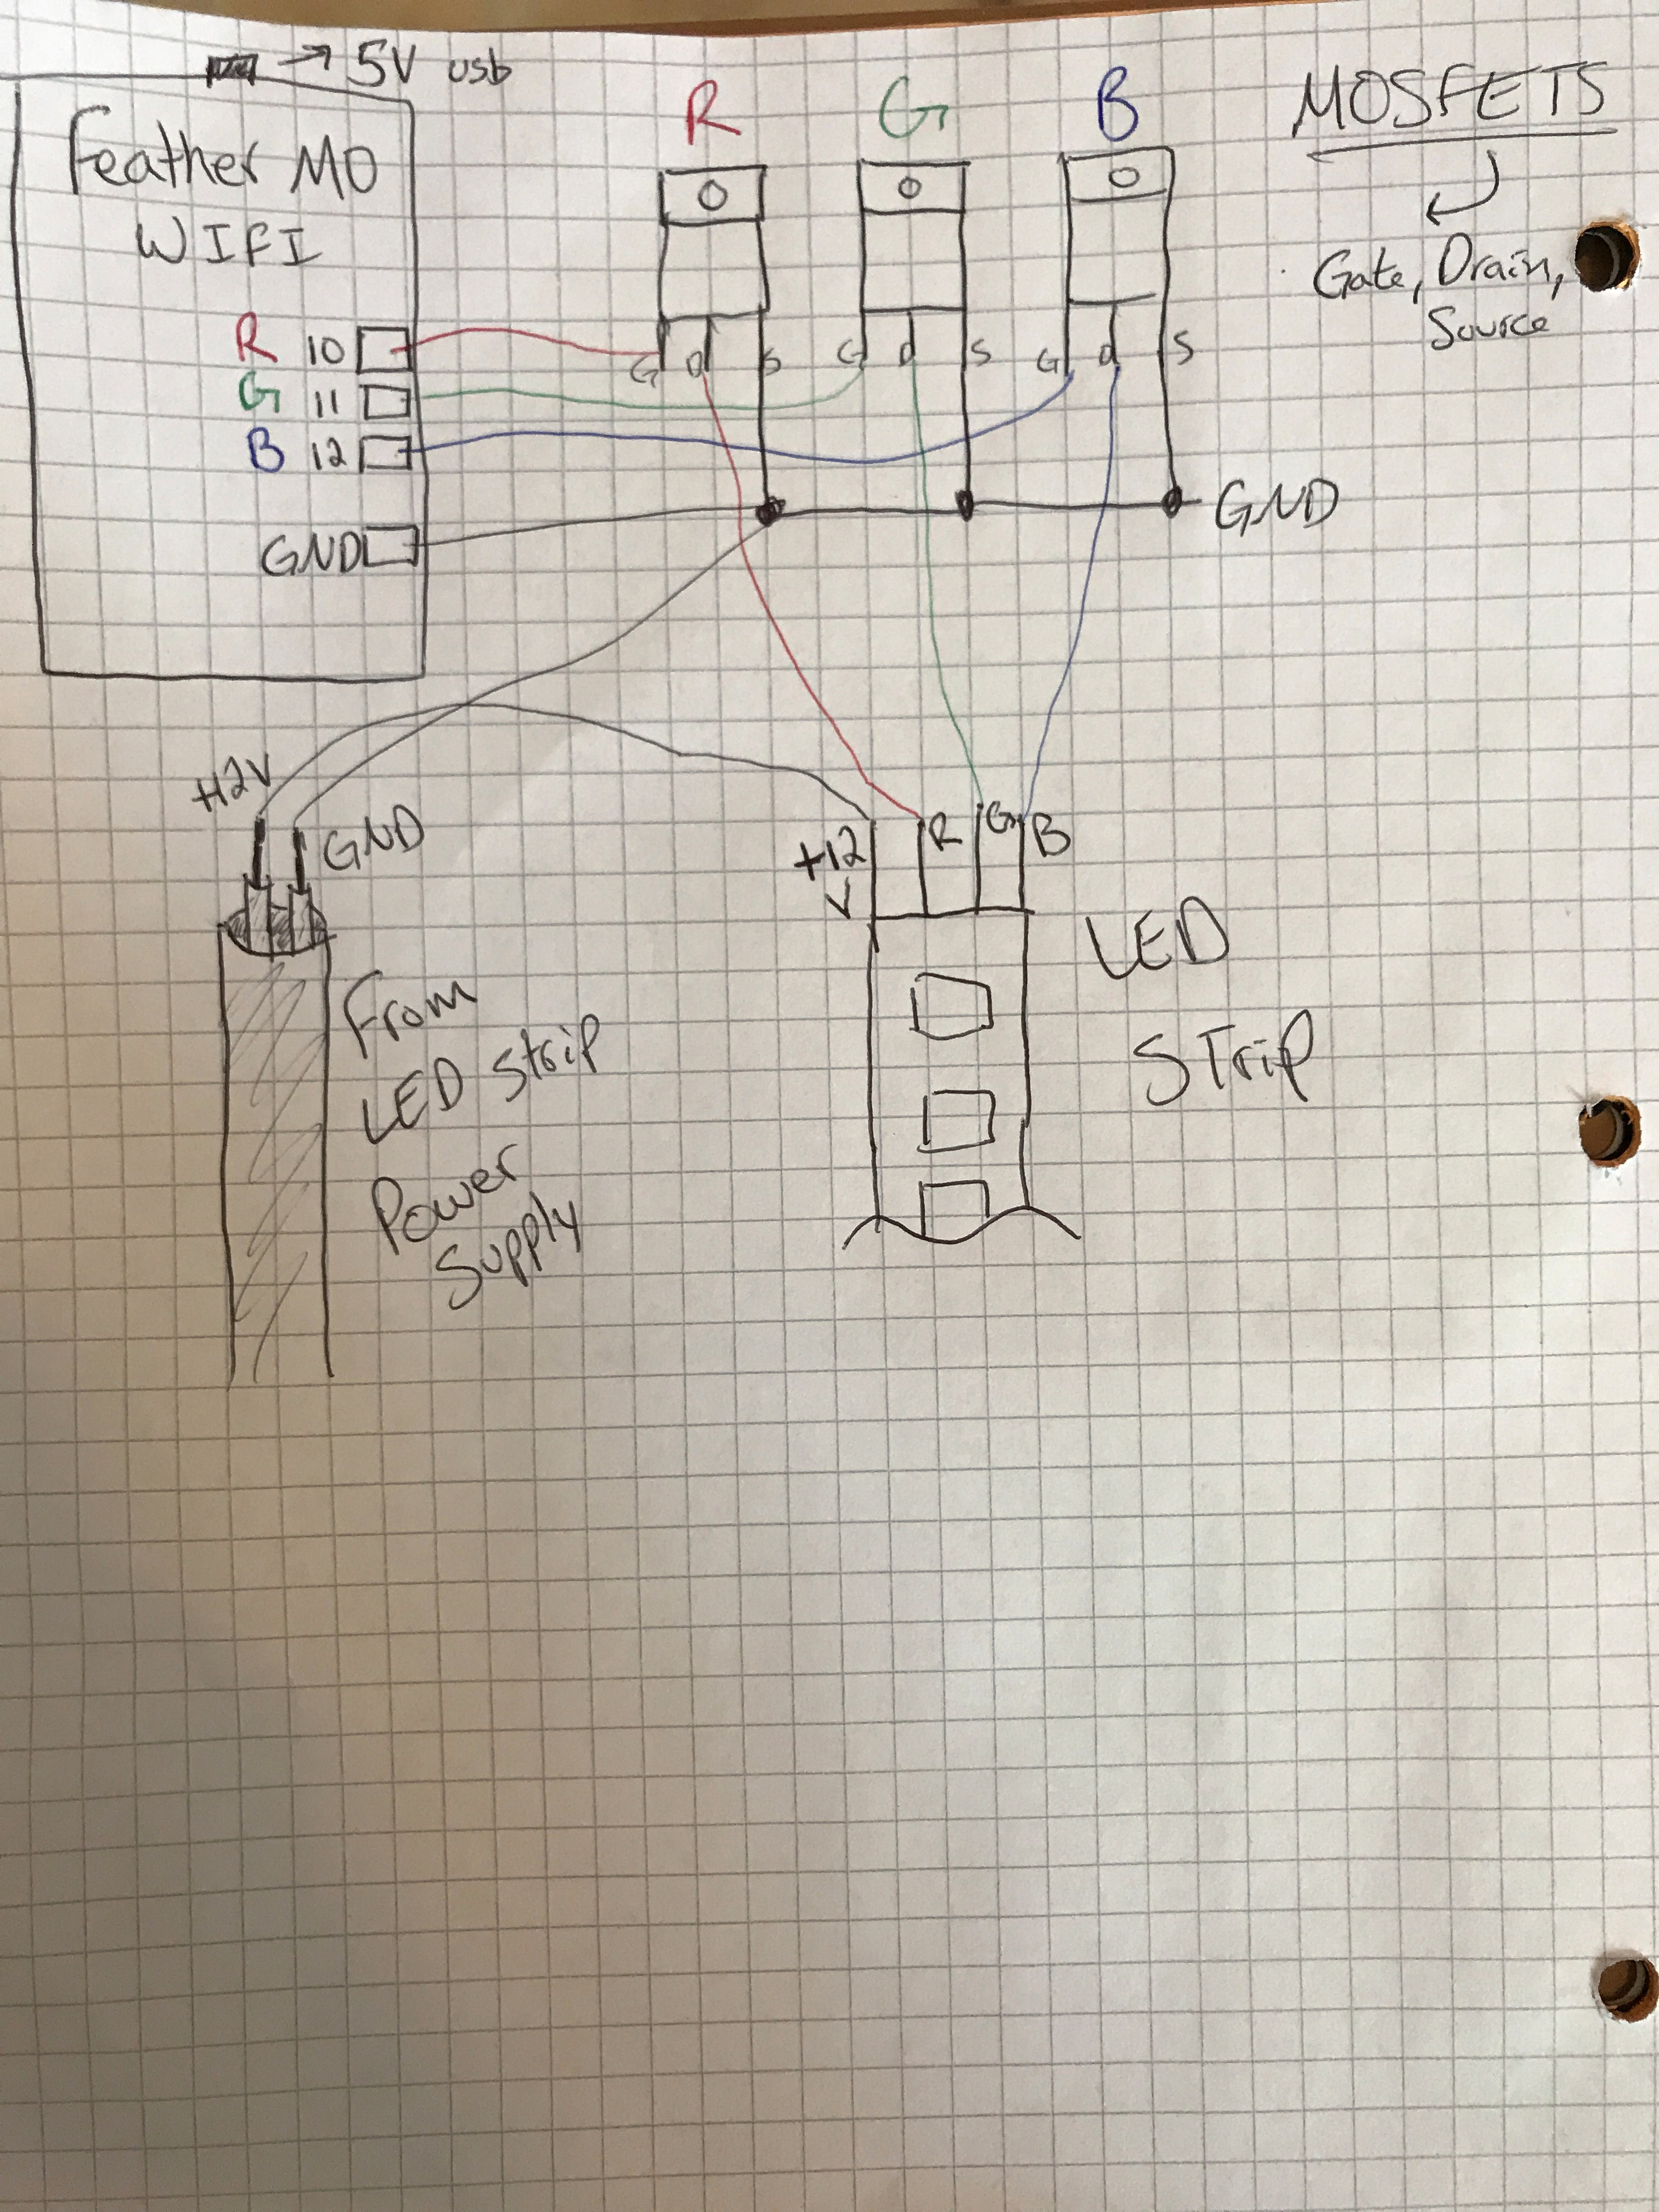 Picture of Wiring the Circuit and Hanging LEDs